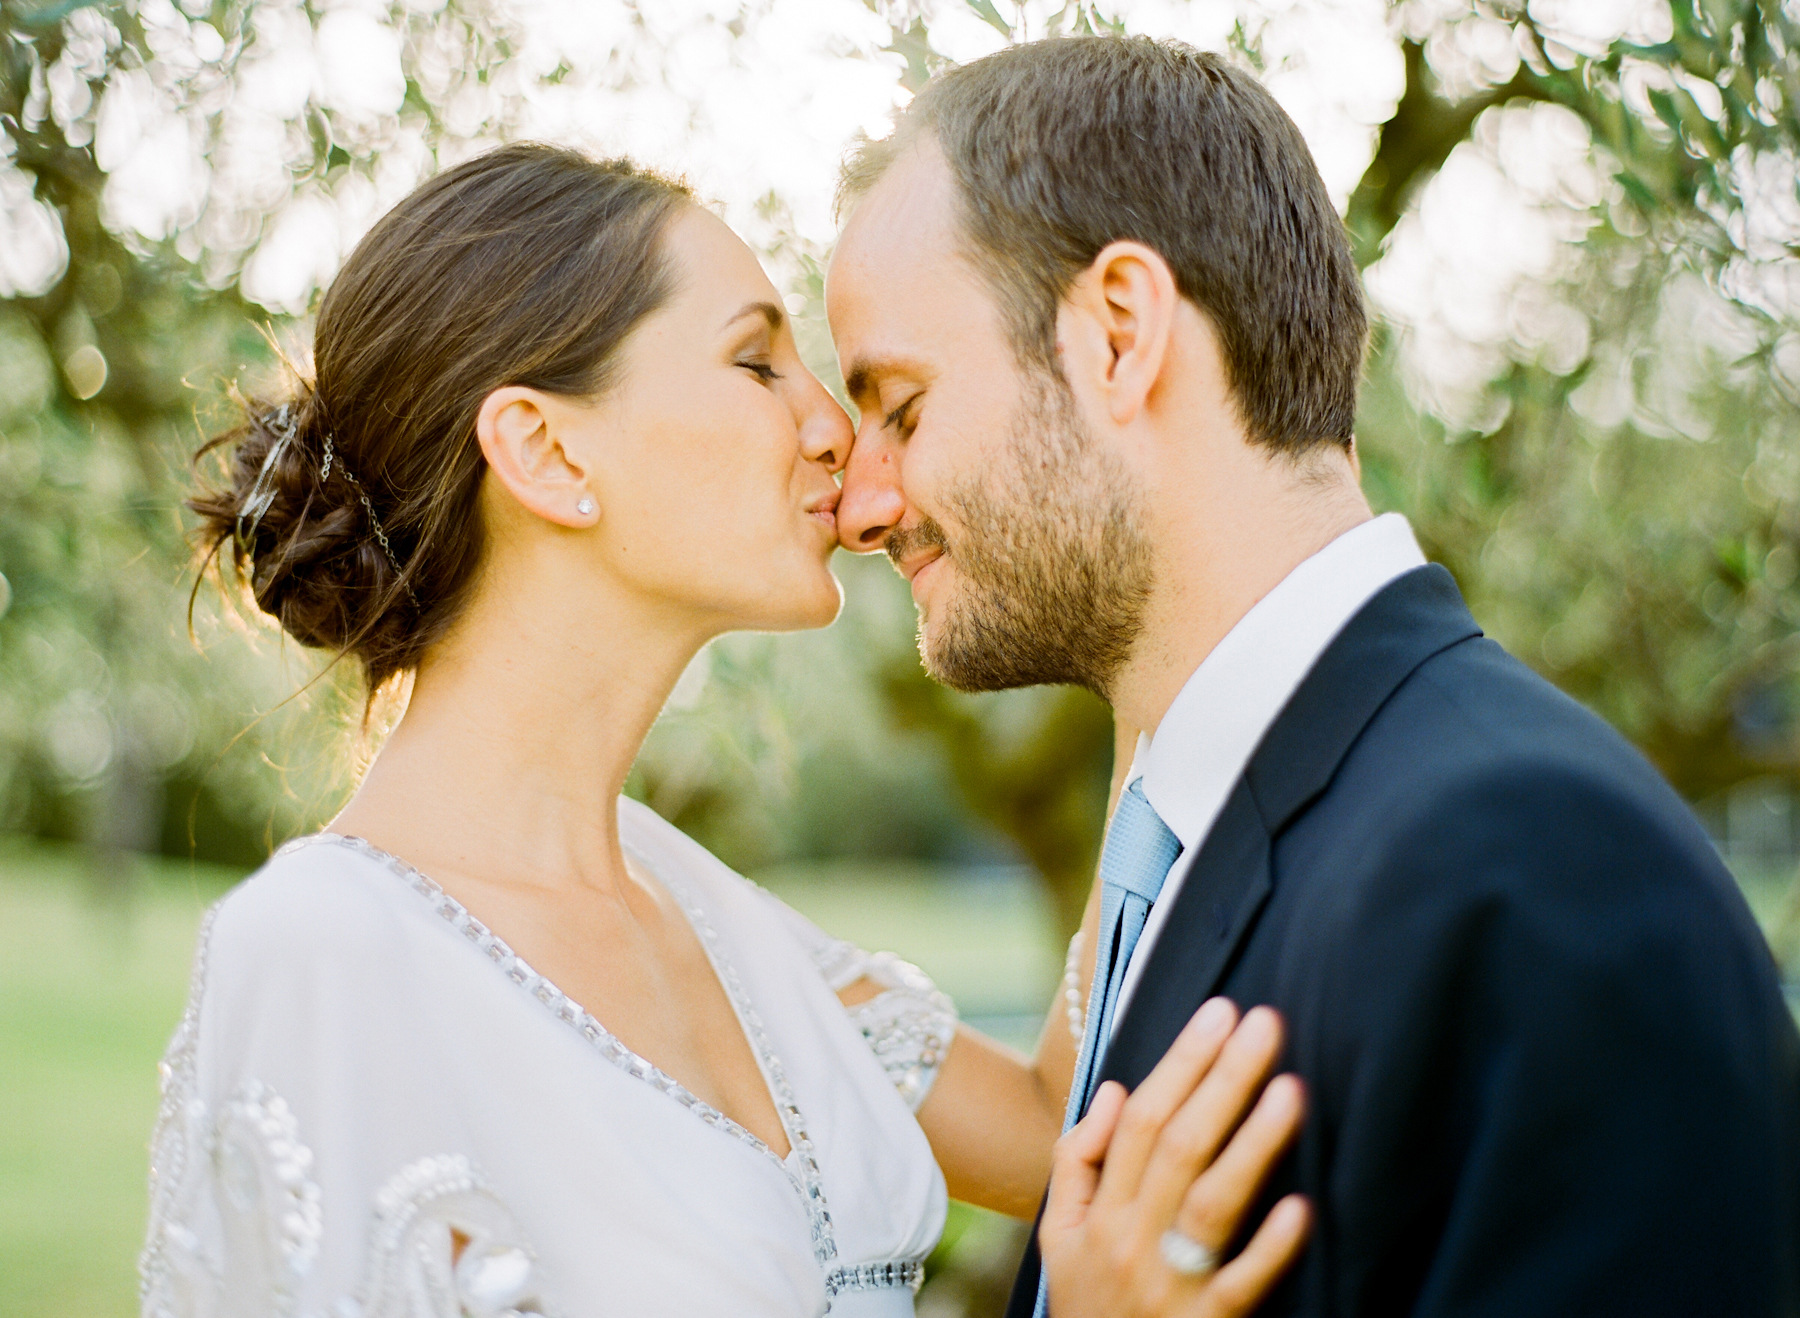 Portrait of bride and groom kissing outside on a sunny day